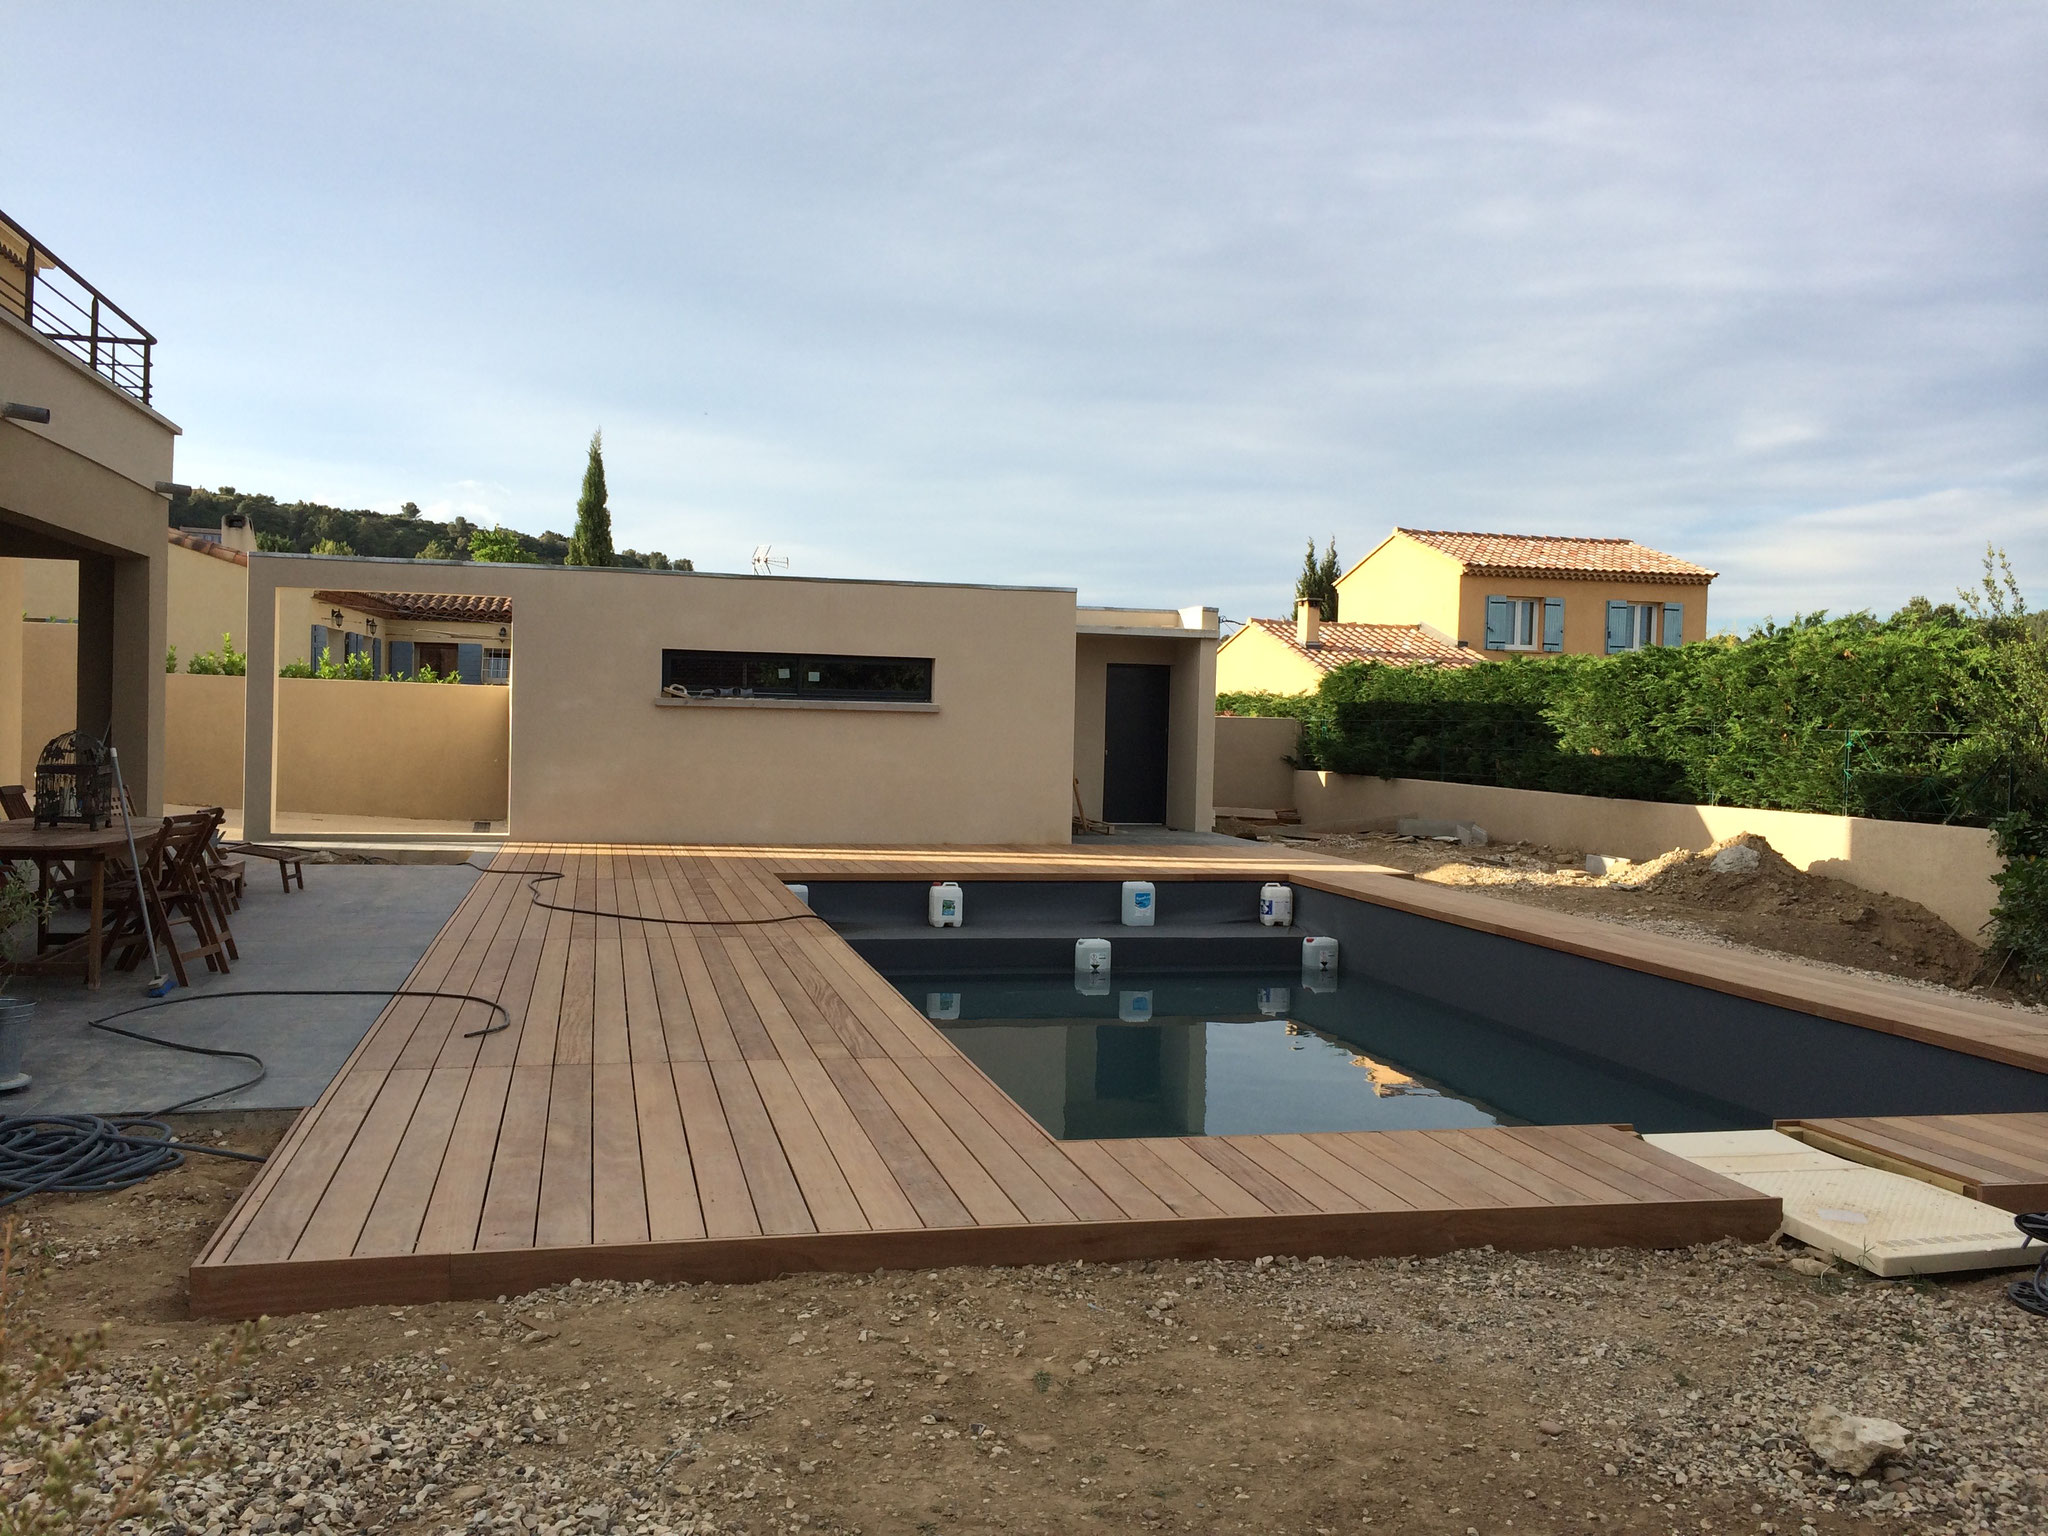 Extension piscine terrasse bois